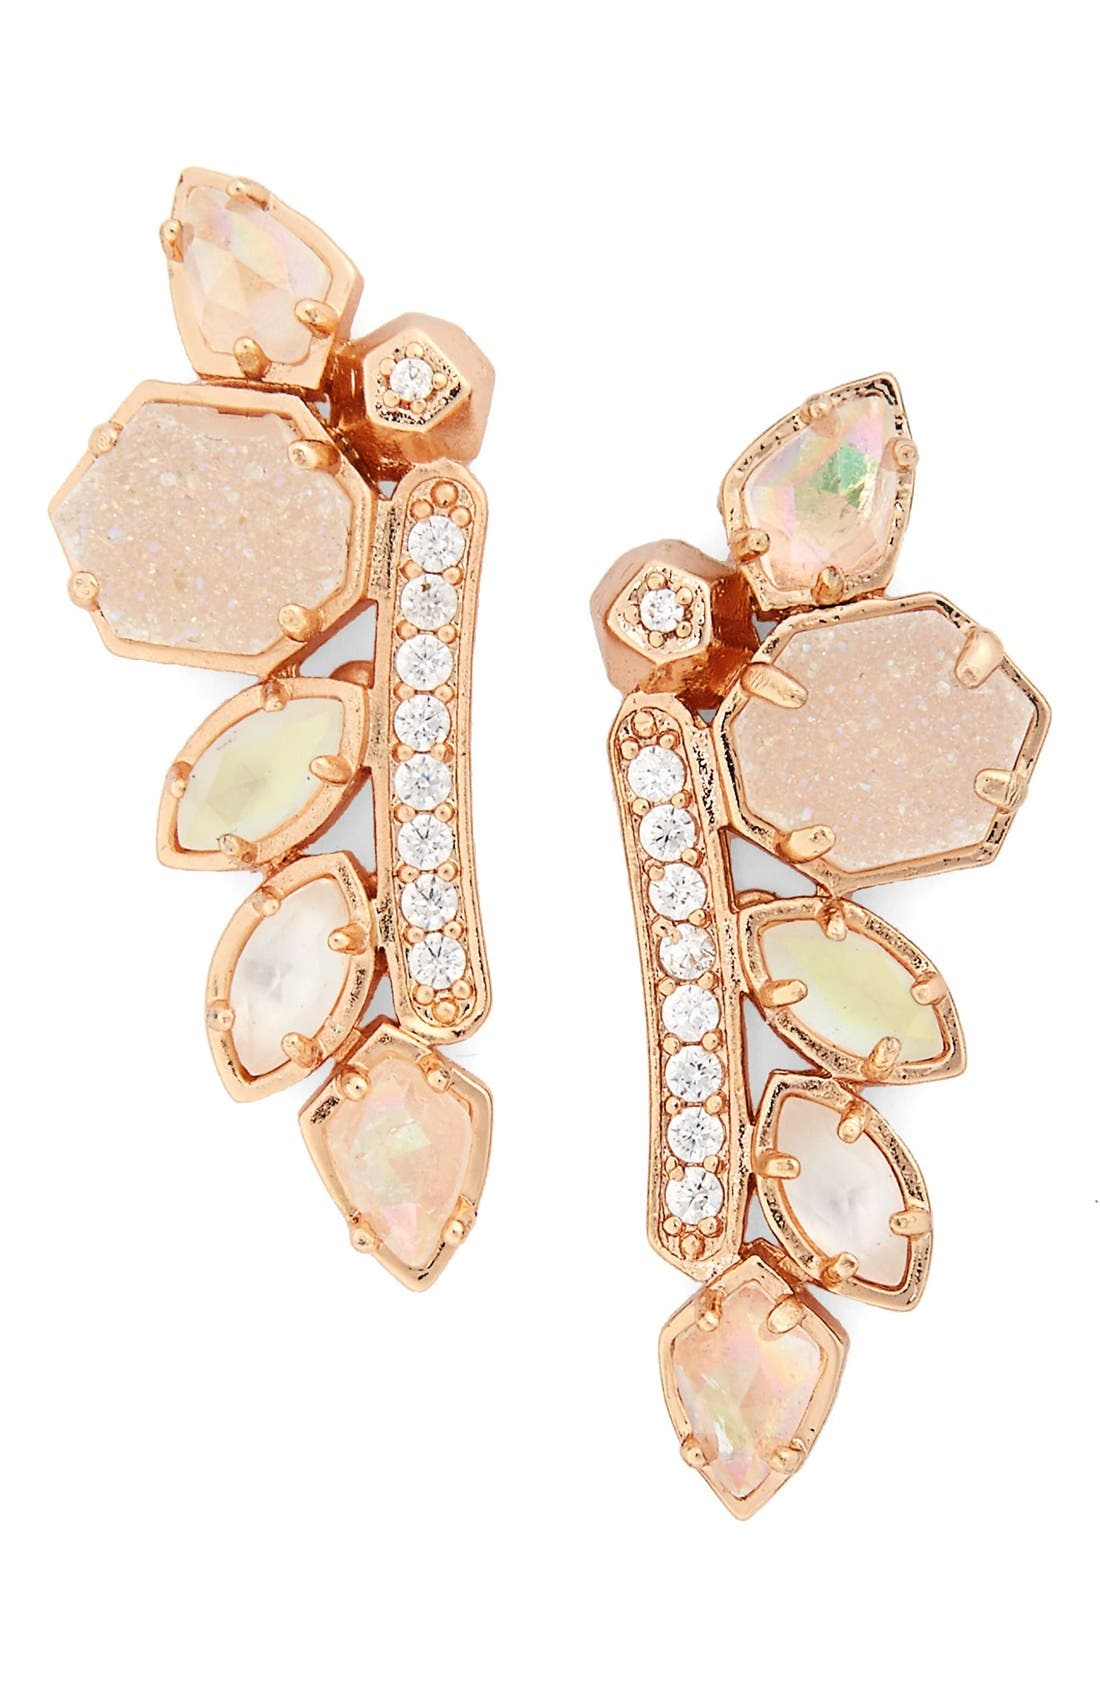 Main Image - Kendra Scott 'Madison' Crystal Ear Crawlers